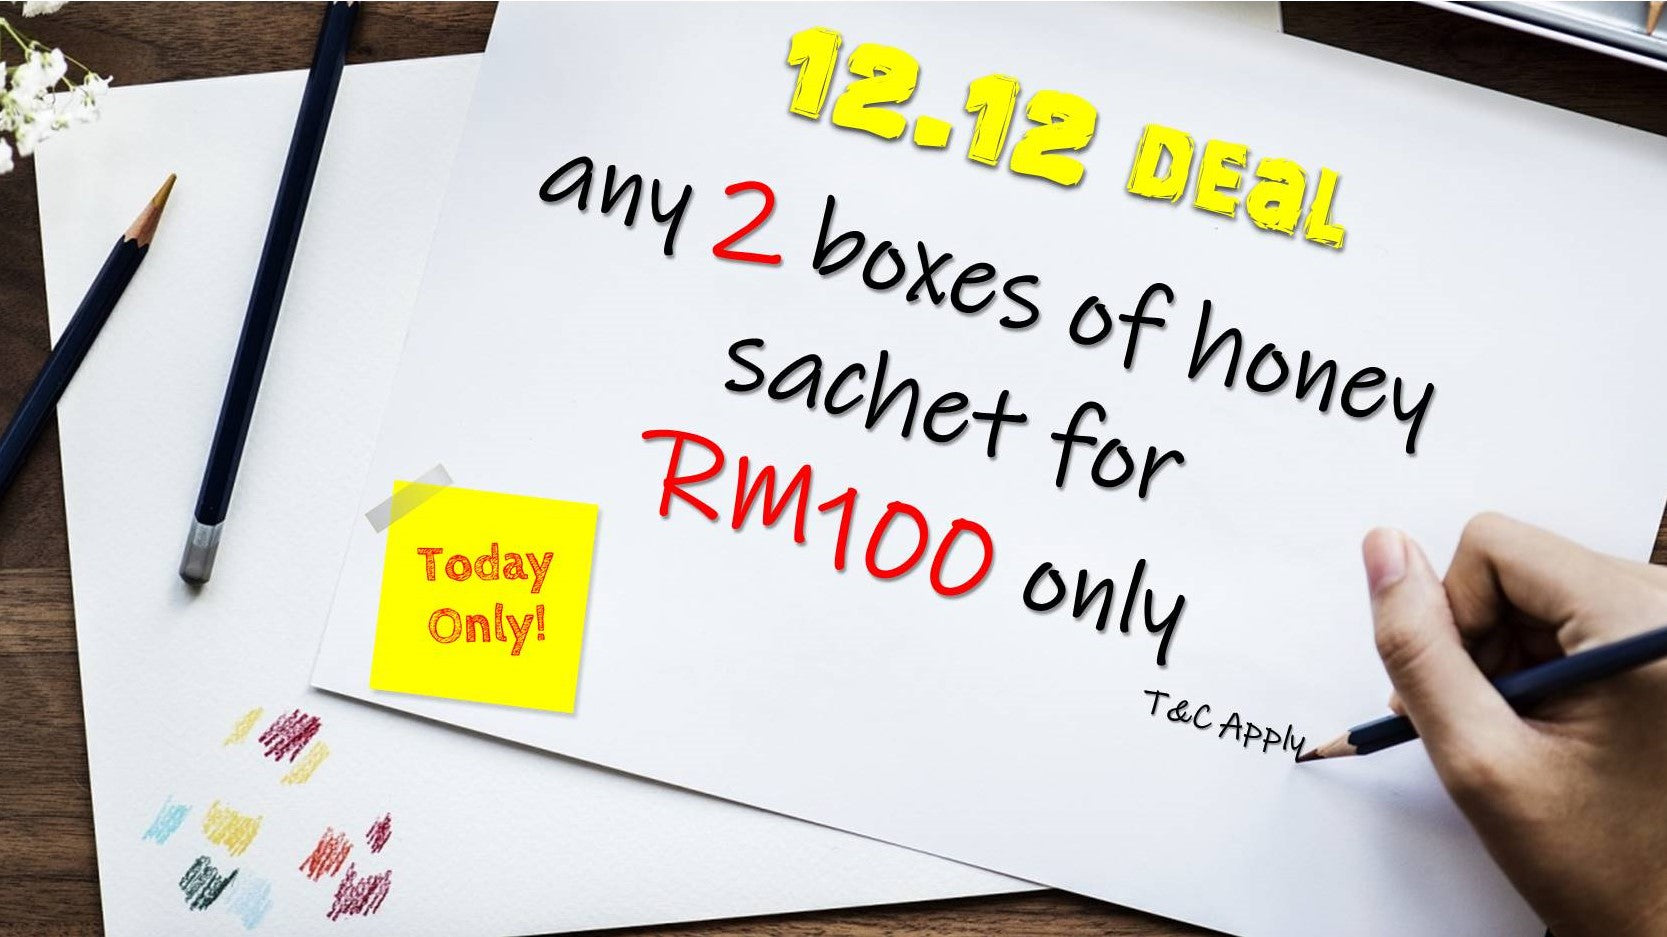 12.12 superb great deal